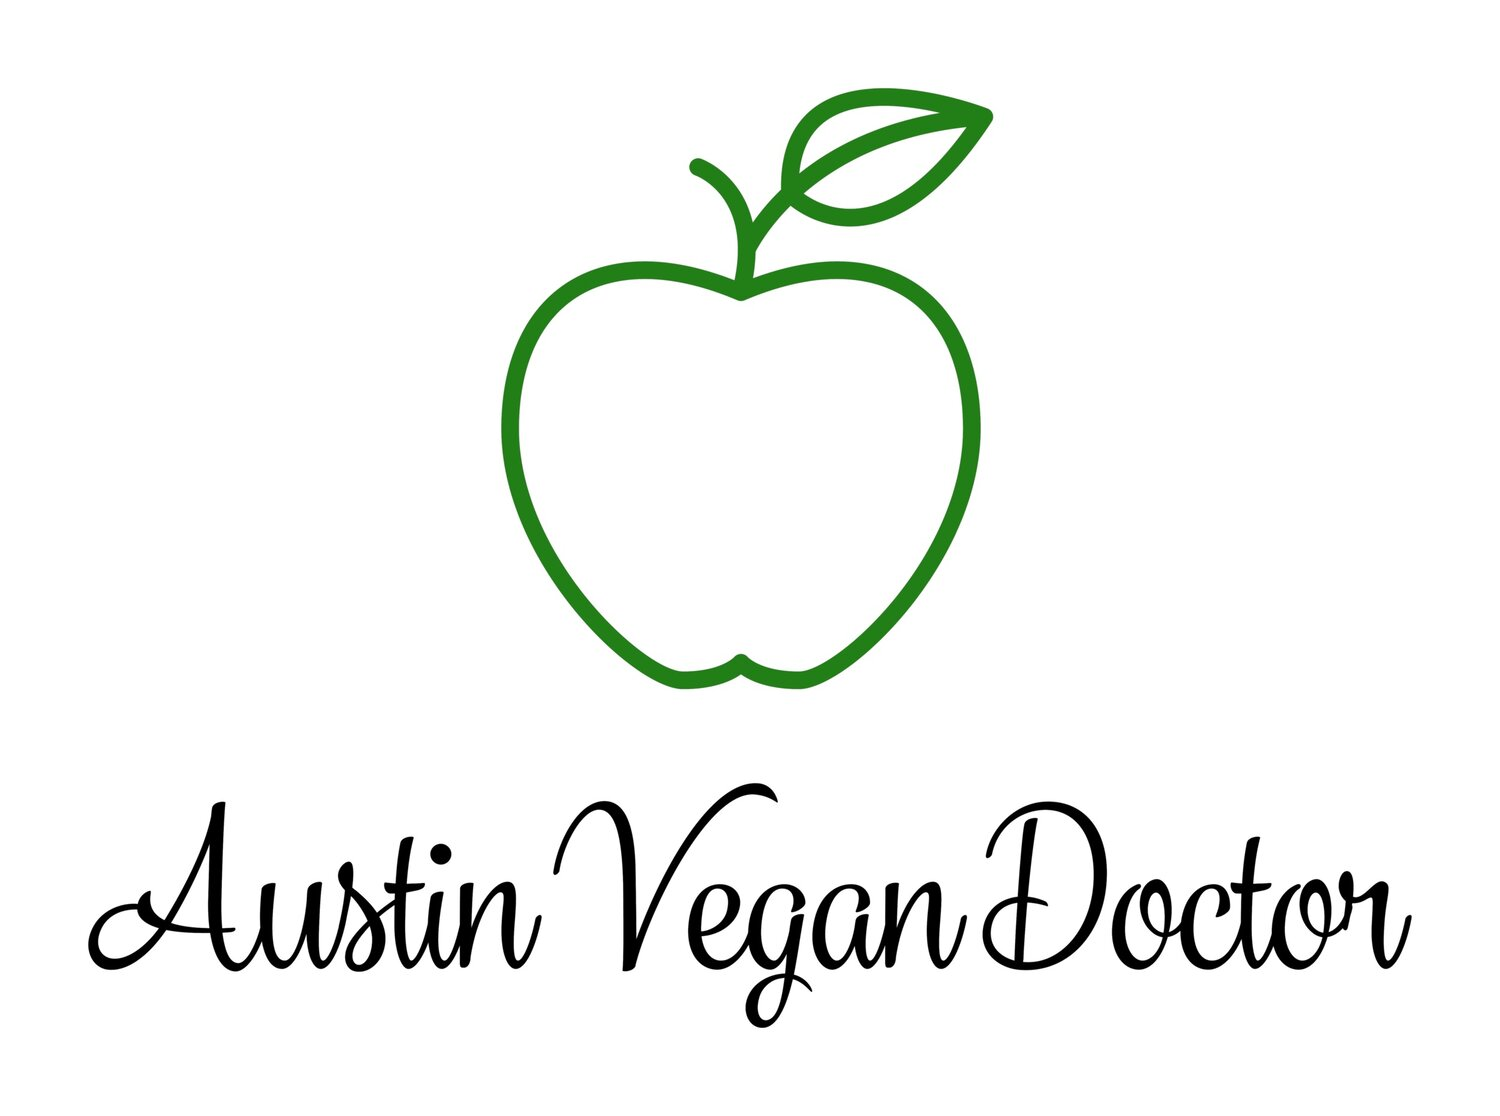 Austin Vegan Doctor